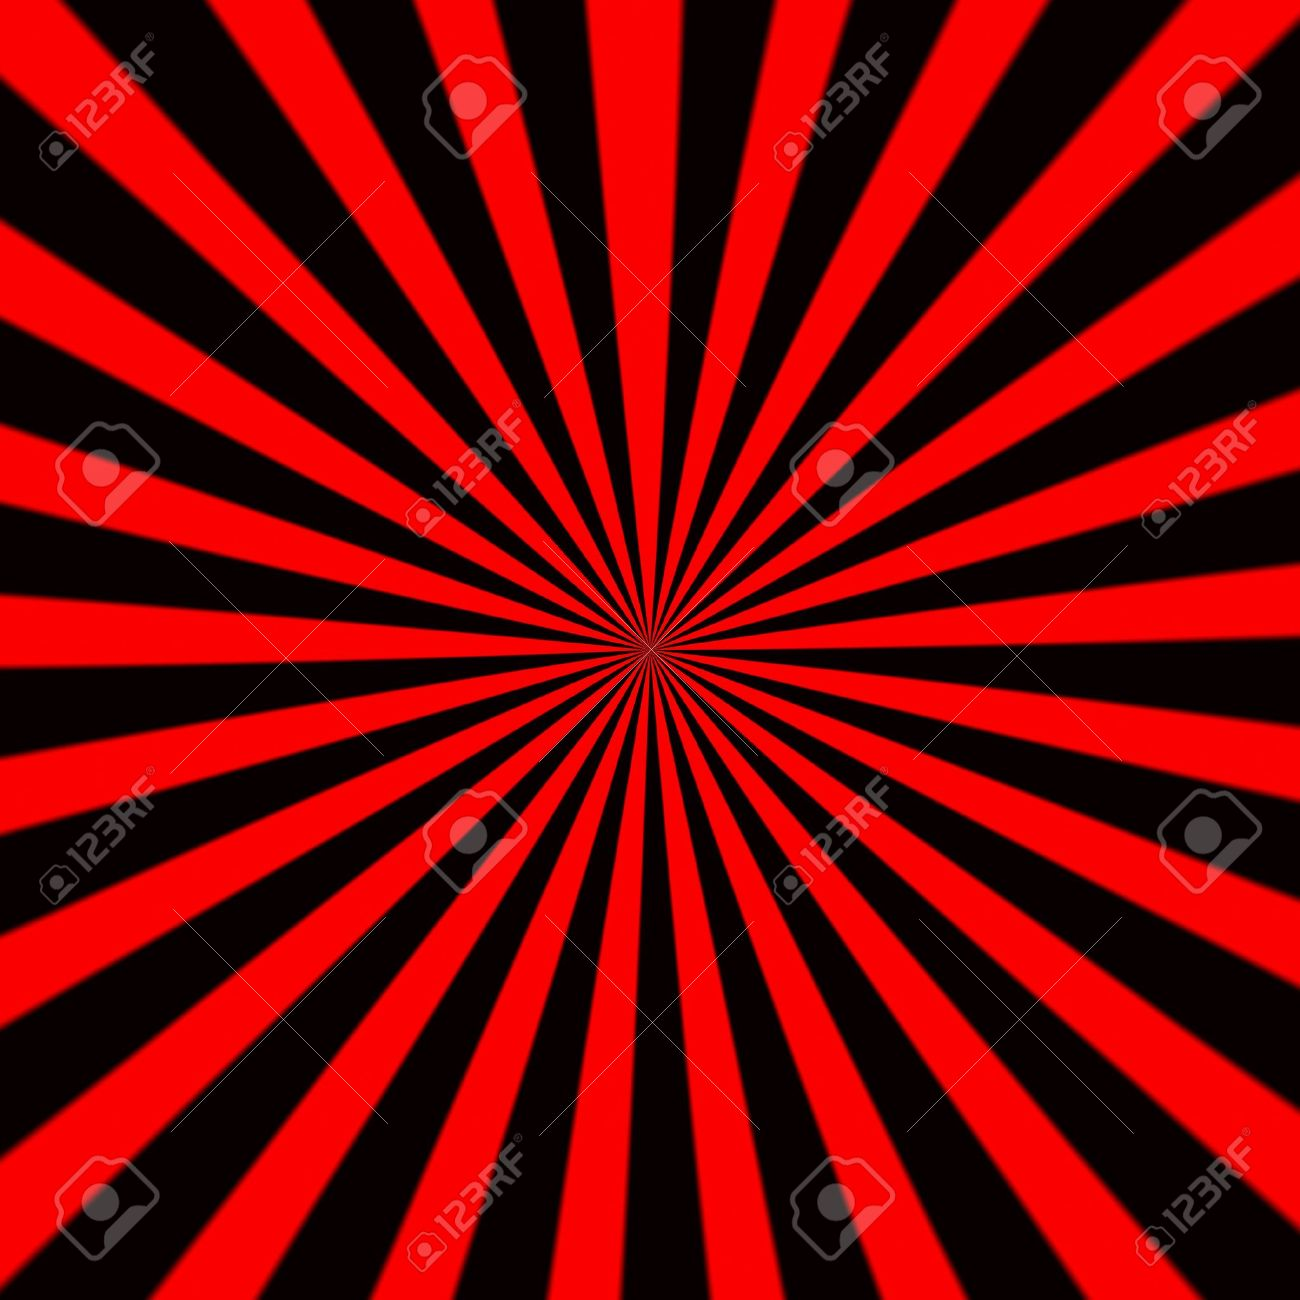 Background image 800x800 - Starburst Background Sunbeams Going In All Directions Red And Black Stock Photo 18295968